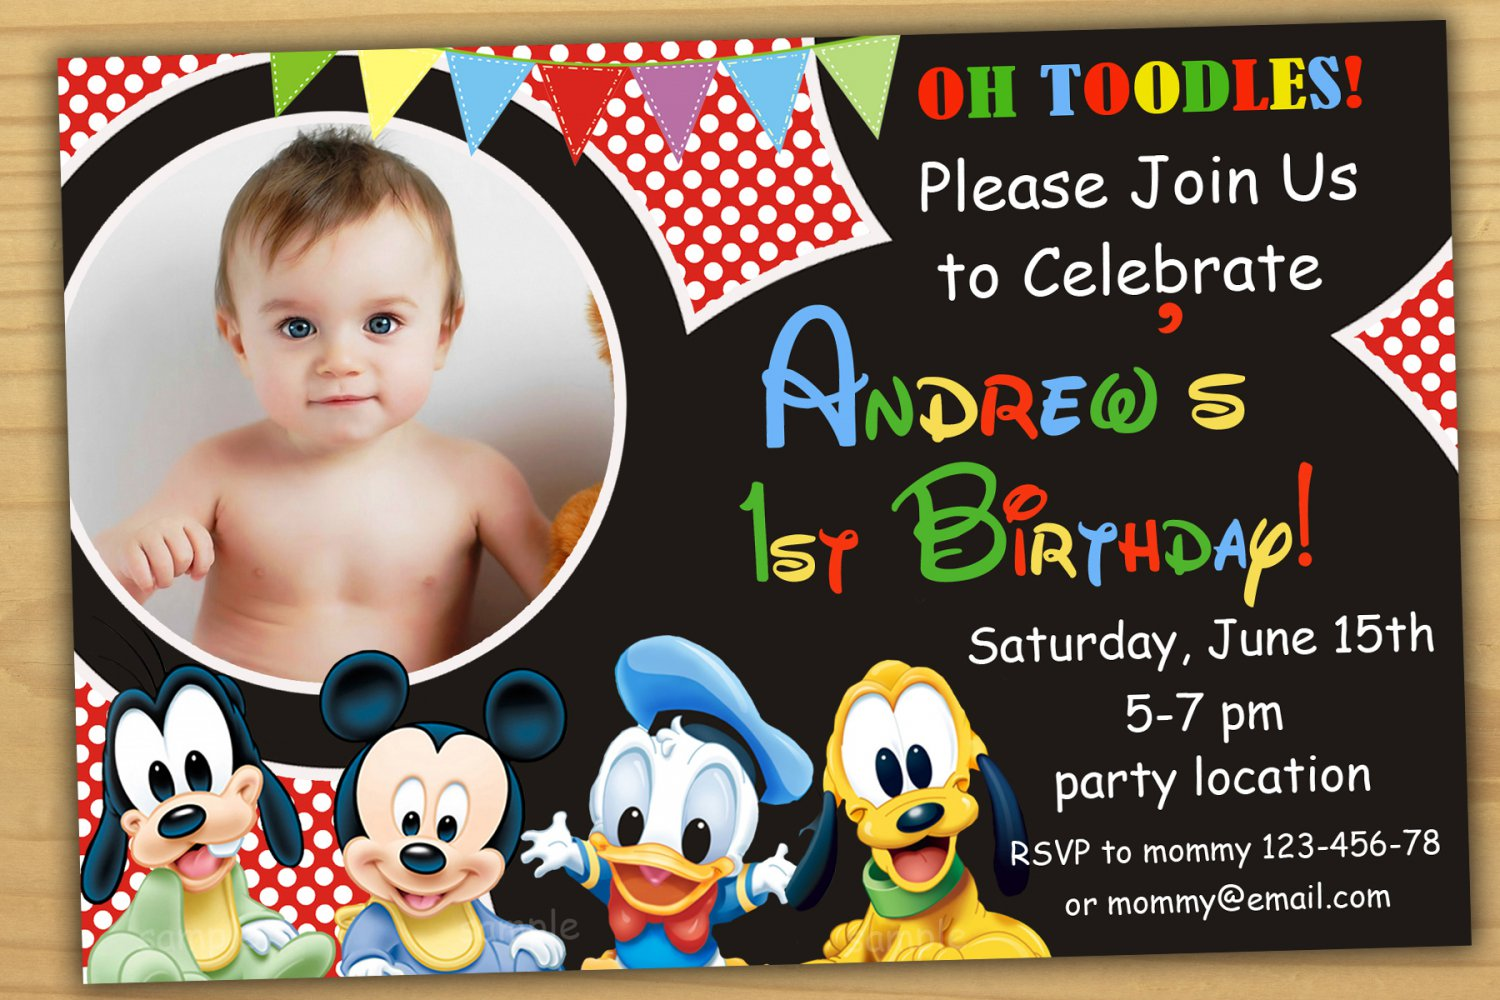 Baby minnie mouse invitationminnie mouse first birthday invitation baby minnie mouse invitationminnie mouse first birthday invitationbaby mickey mouse invitation filmwisefo